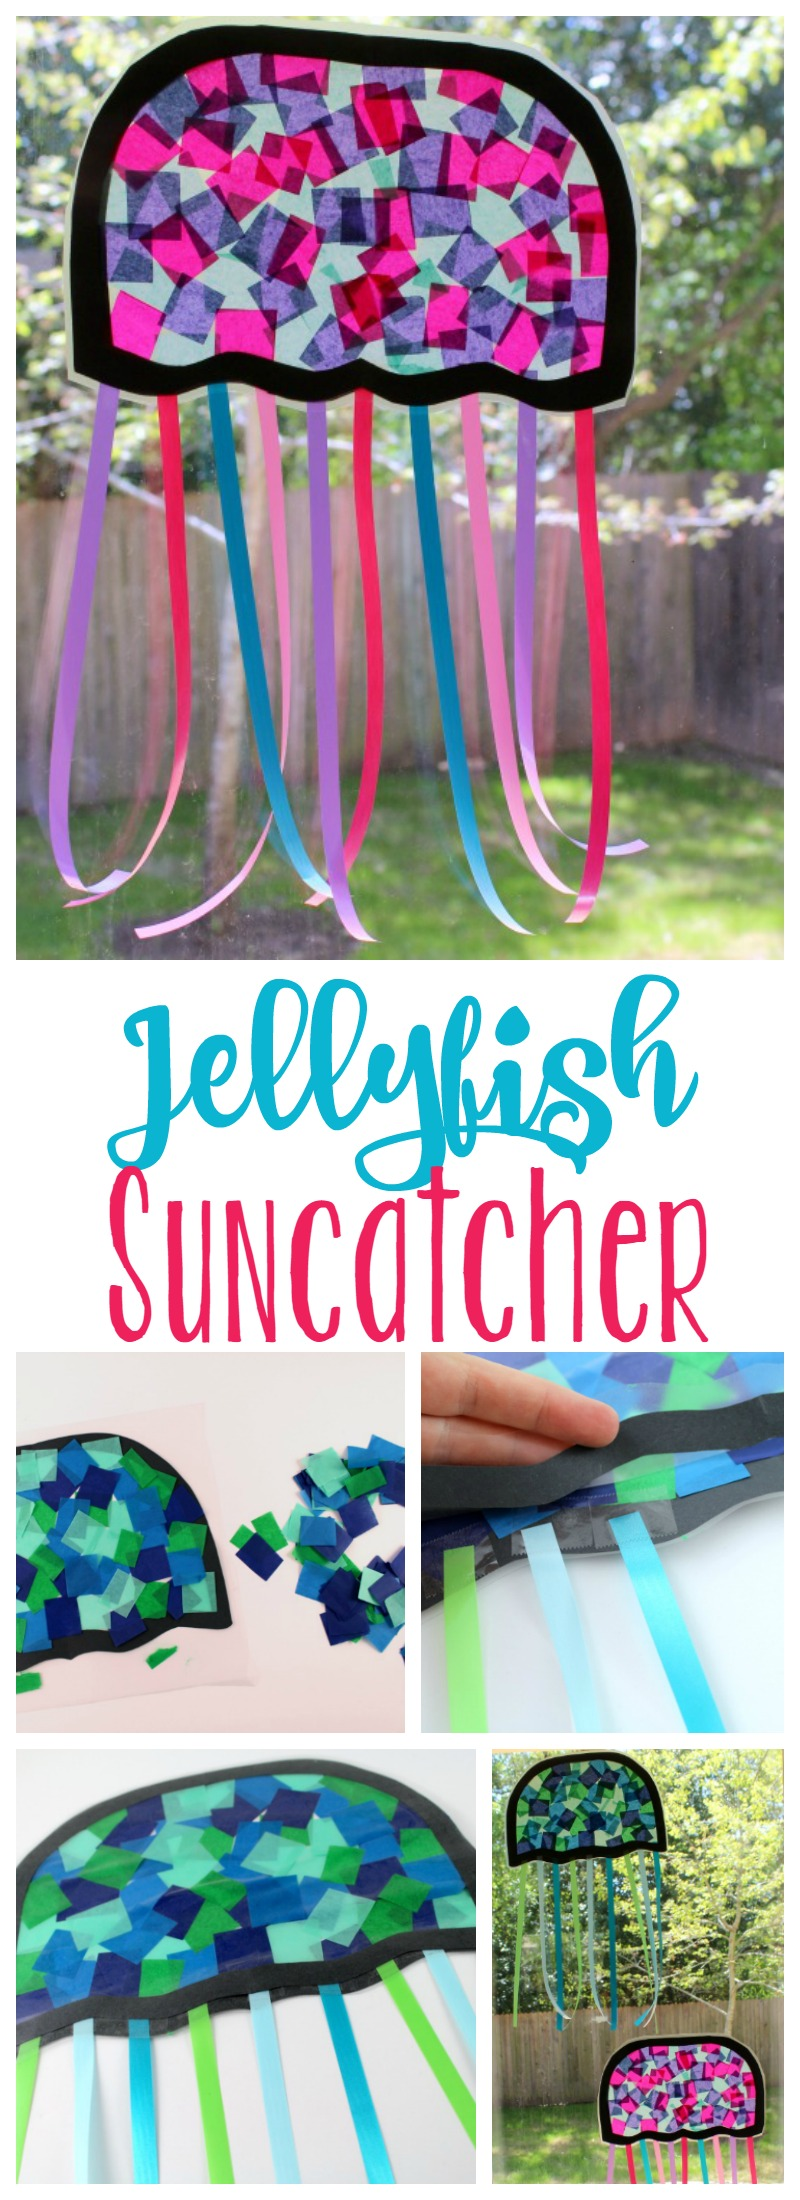 Jellysifh Suncatcher // Life Anchored